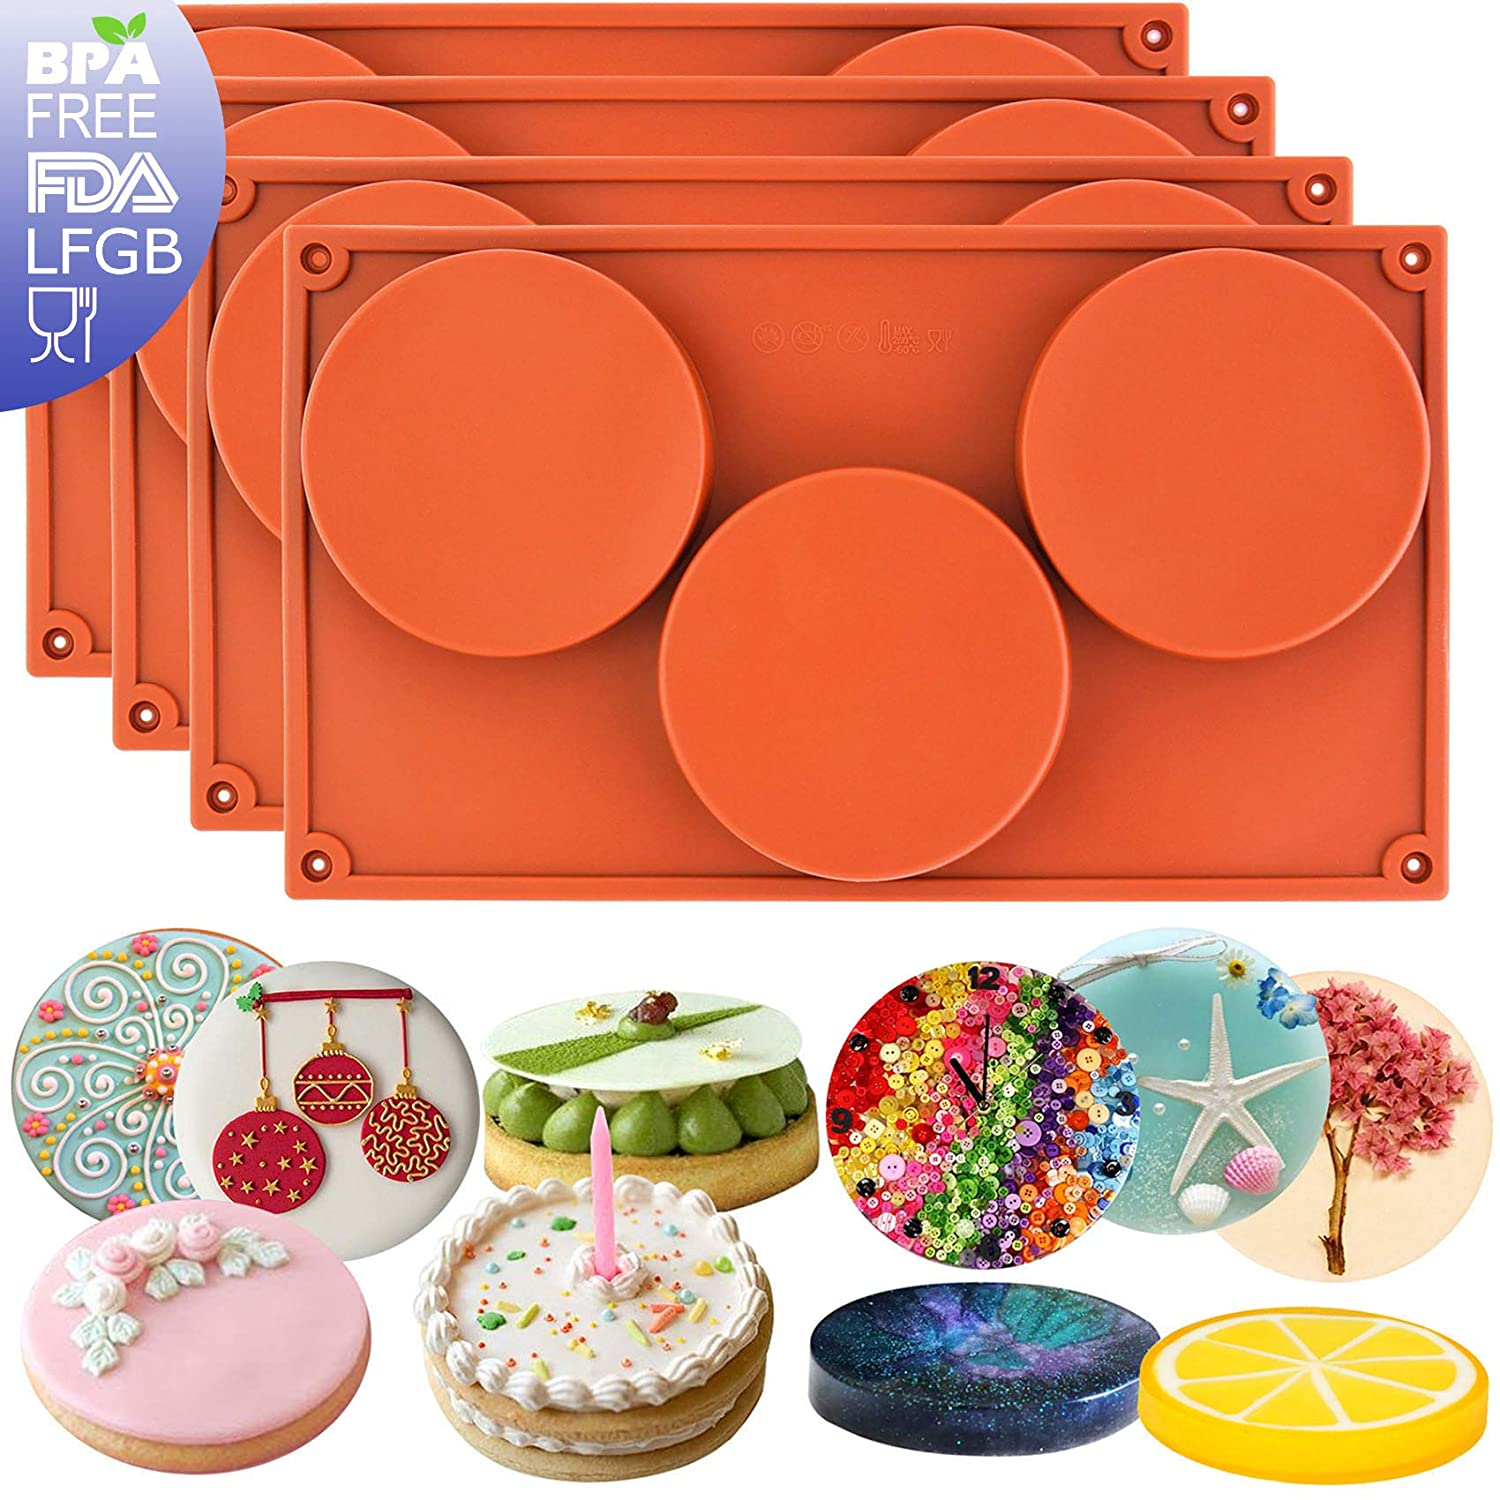 musykrafties 3-Cavity Large Round Disc Candy Silicone Moulds Teacake Pastry Bakeware for Baking, Polymer Clay, Soap Making, Epoxy Resin, Jewelry Making, Crafting Projects 2 in Set